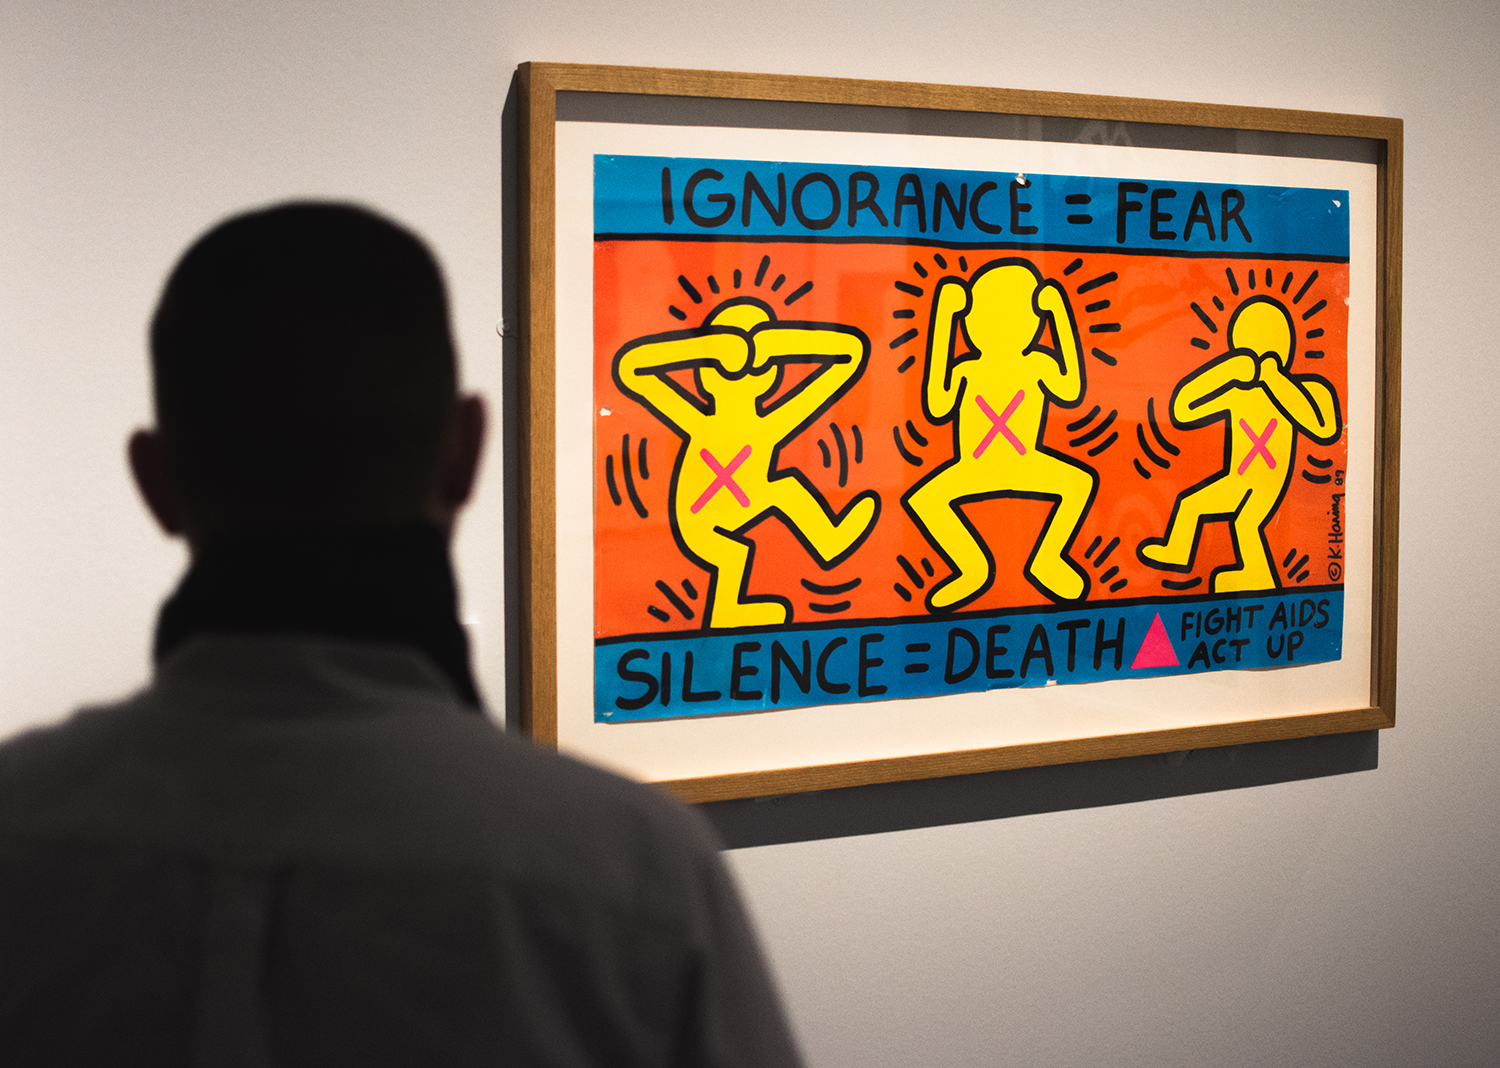 Keith Haring's Ignorance is Fear in the exhibition.